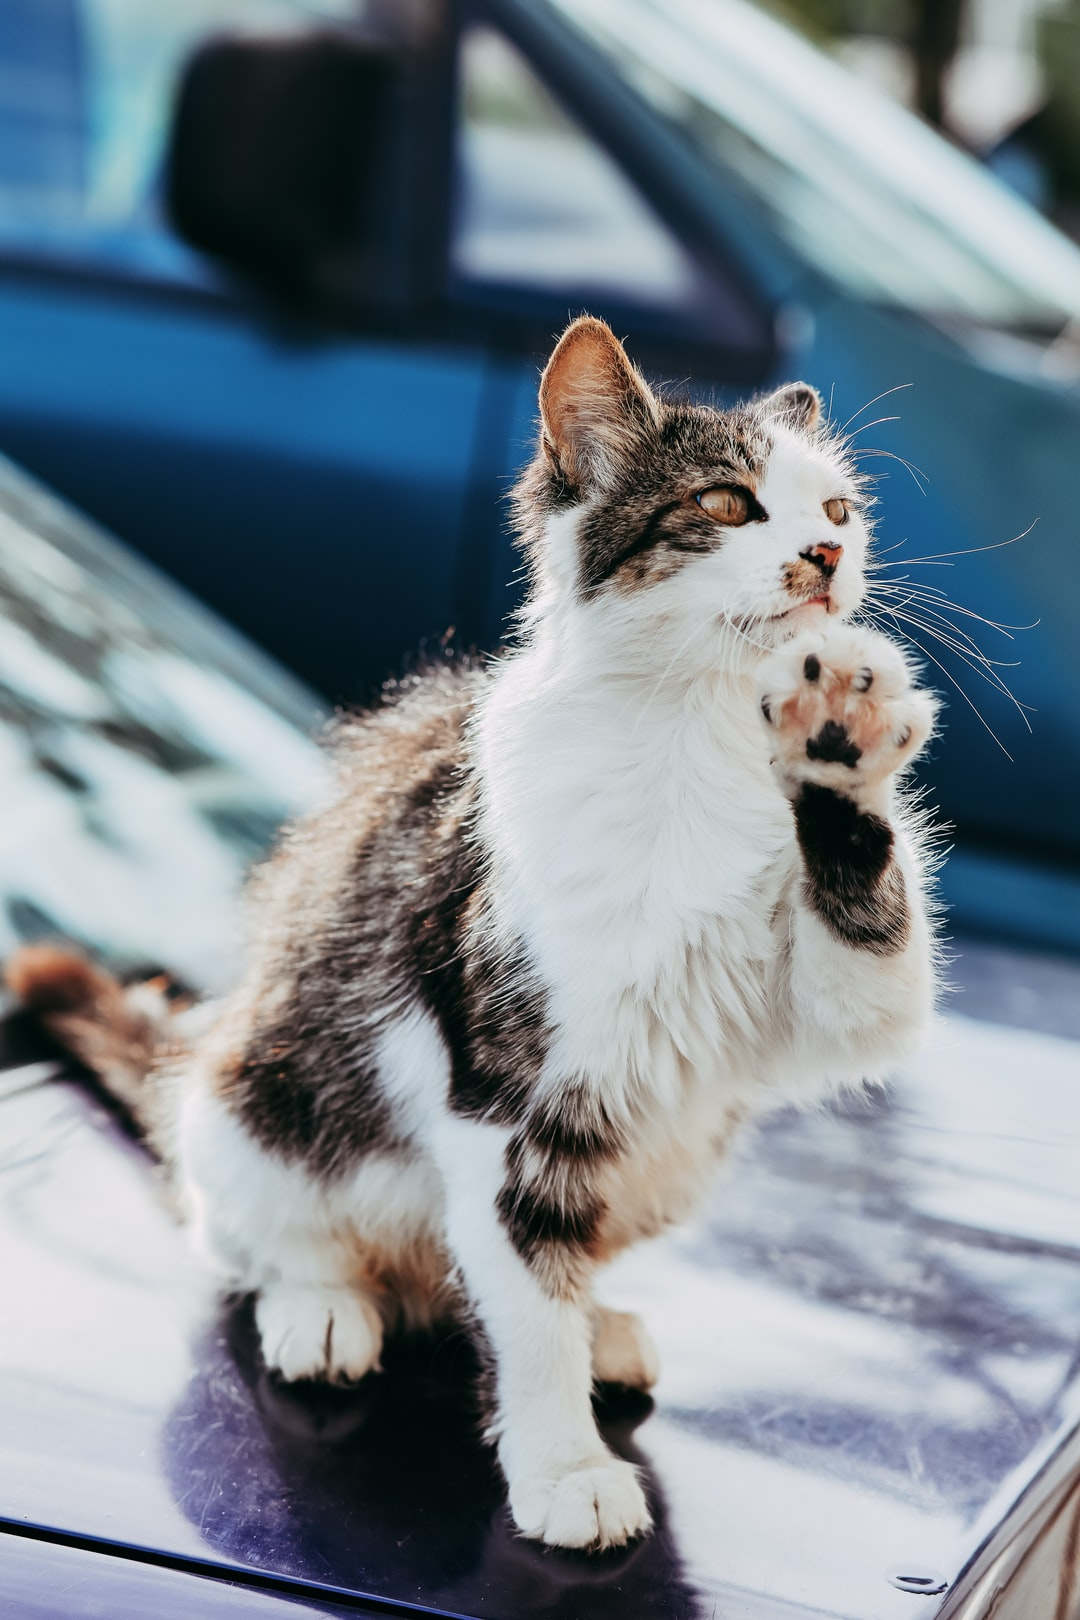 Street cat on a car raises its paw up